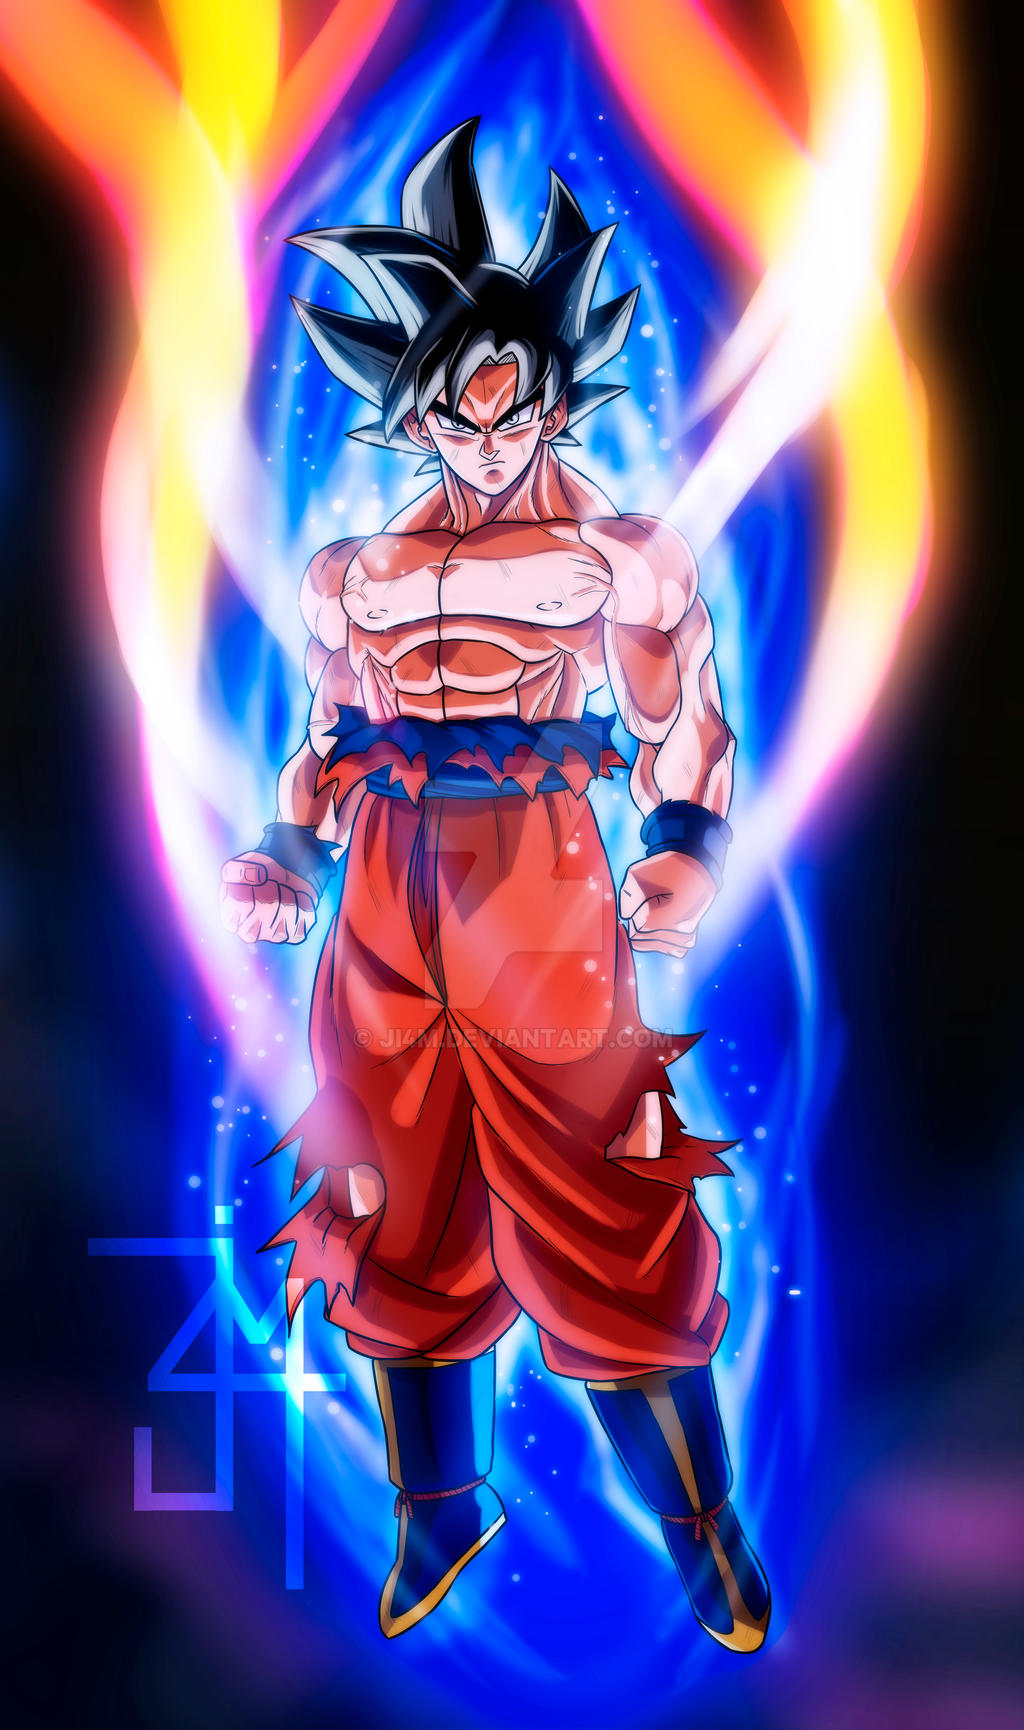 Ultra Instinct Wallpaper 4k Vegeta Ultra Instinct Dragon